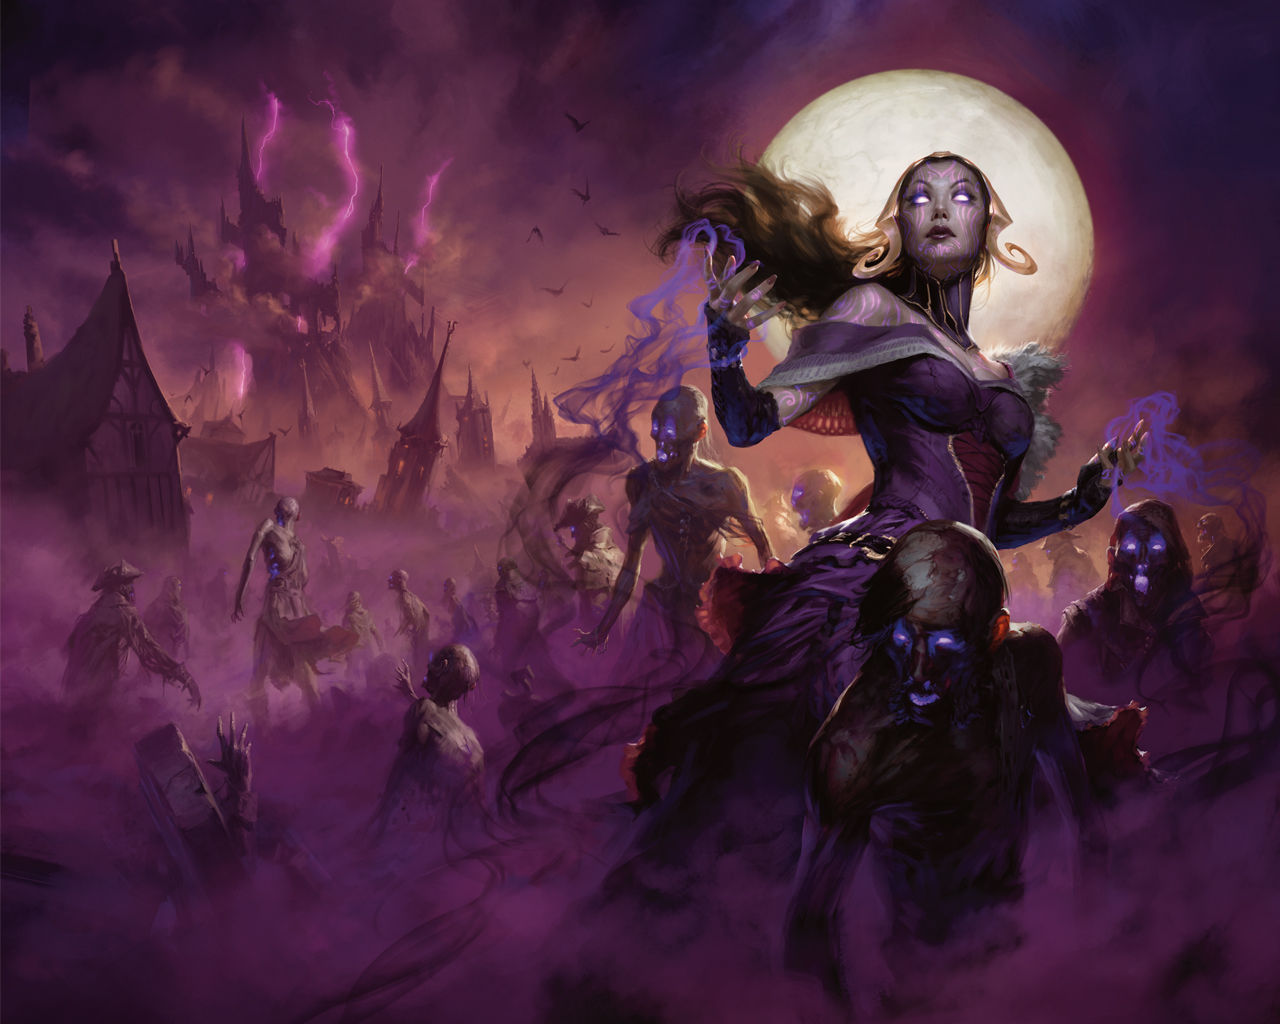 liliana-eldritch-moon-wallpaper